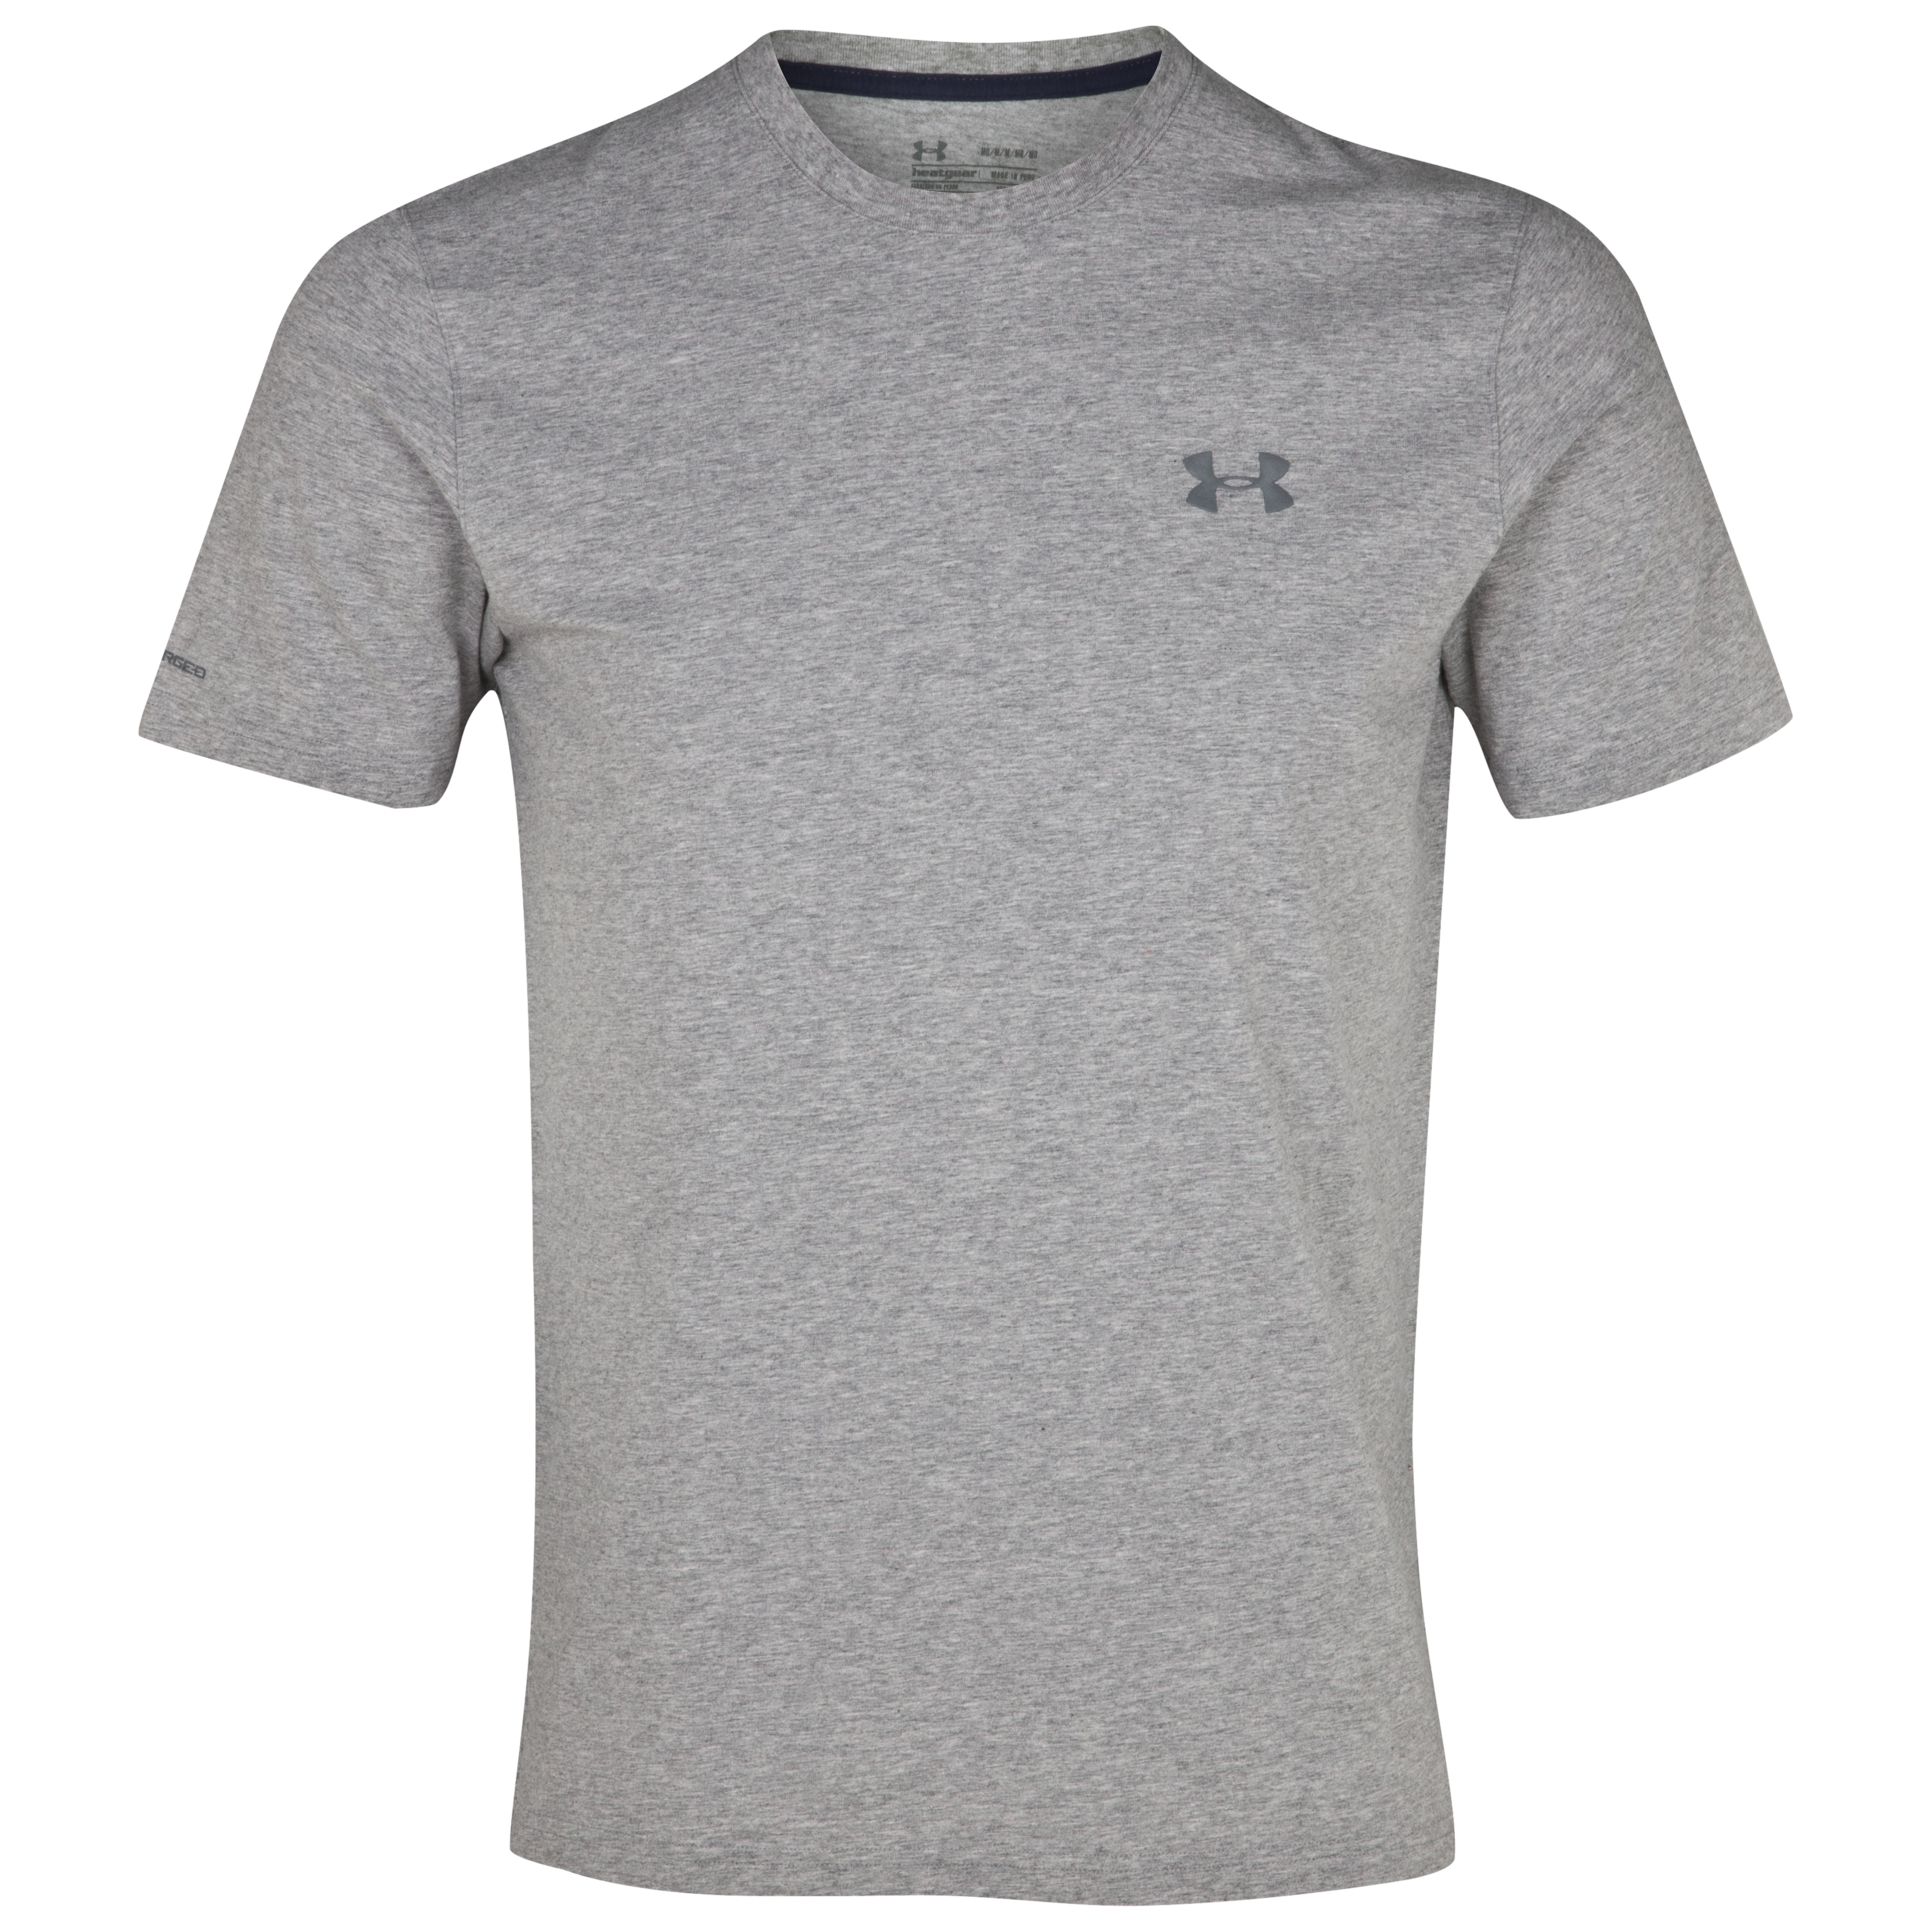 Under Armour Charged Cotton T-Shirt - True Grey Heather/Graphite